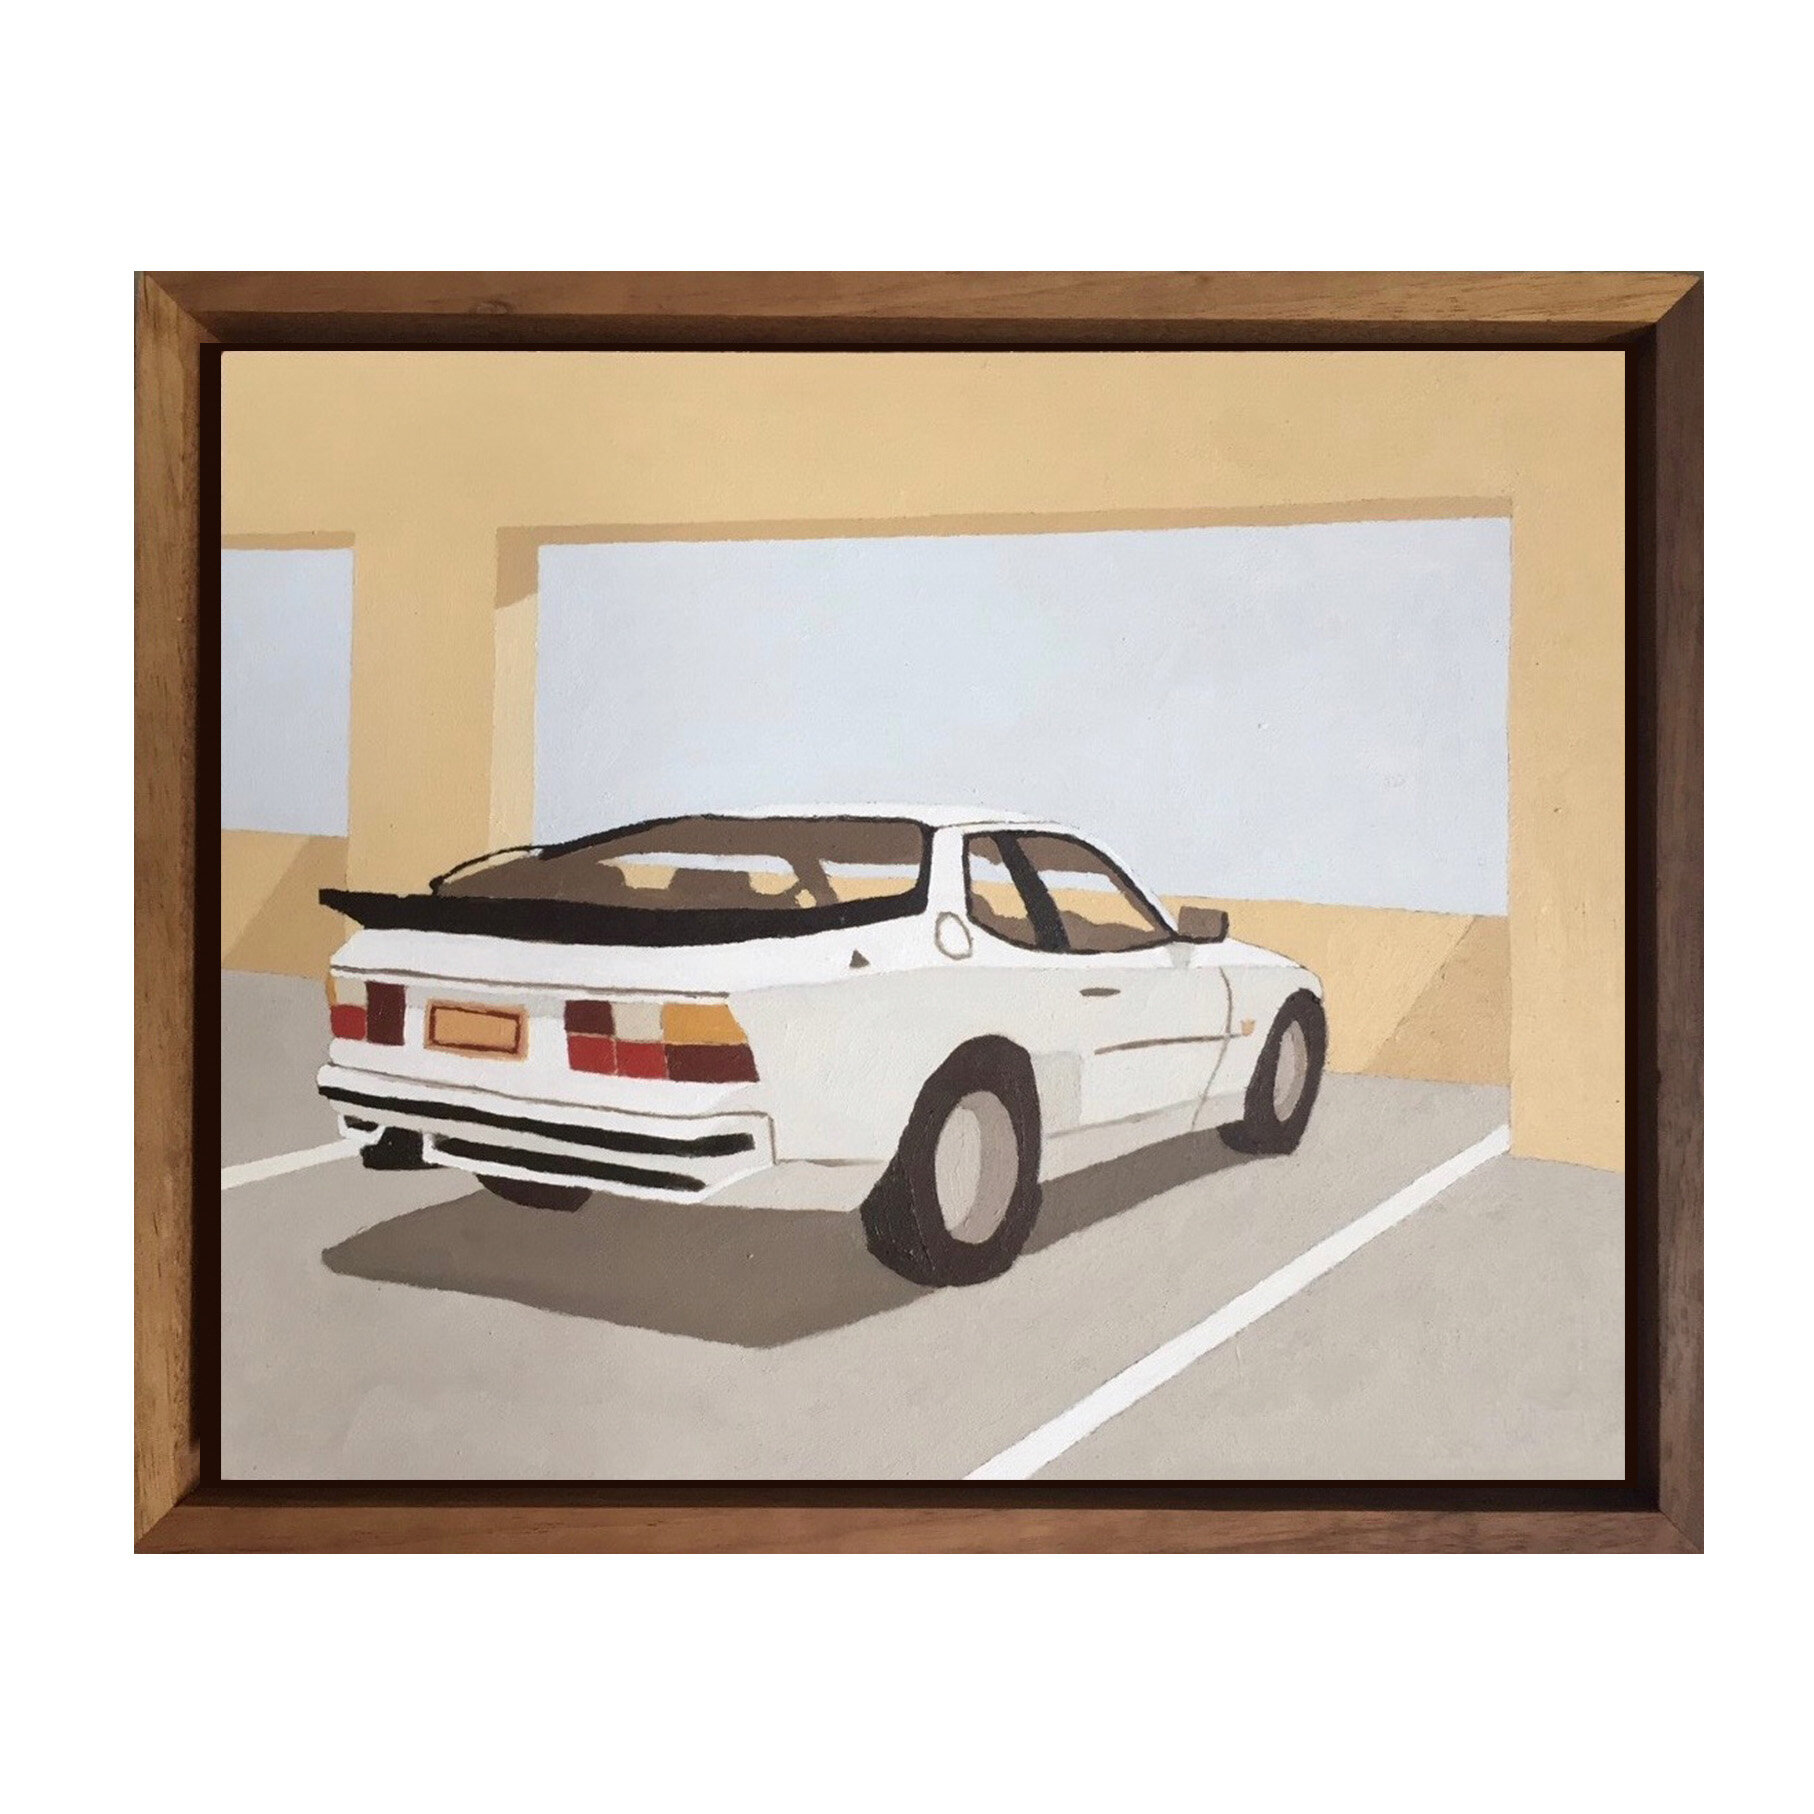 The First Car That I Have Ever Loved_20x25cm_oil on board copy.jpg